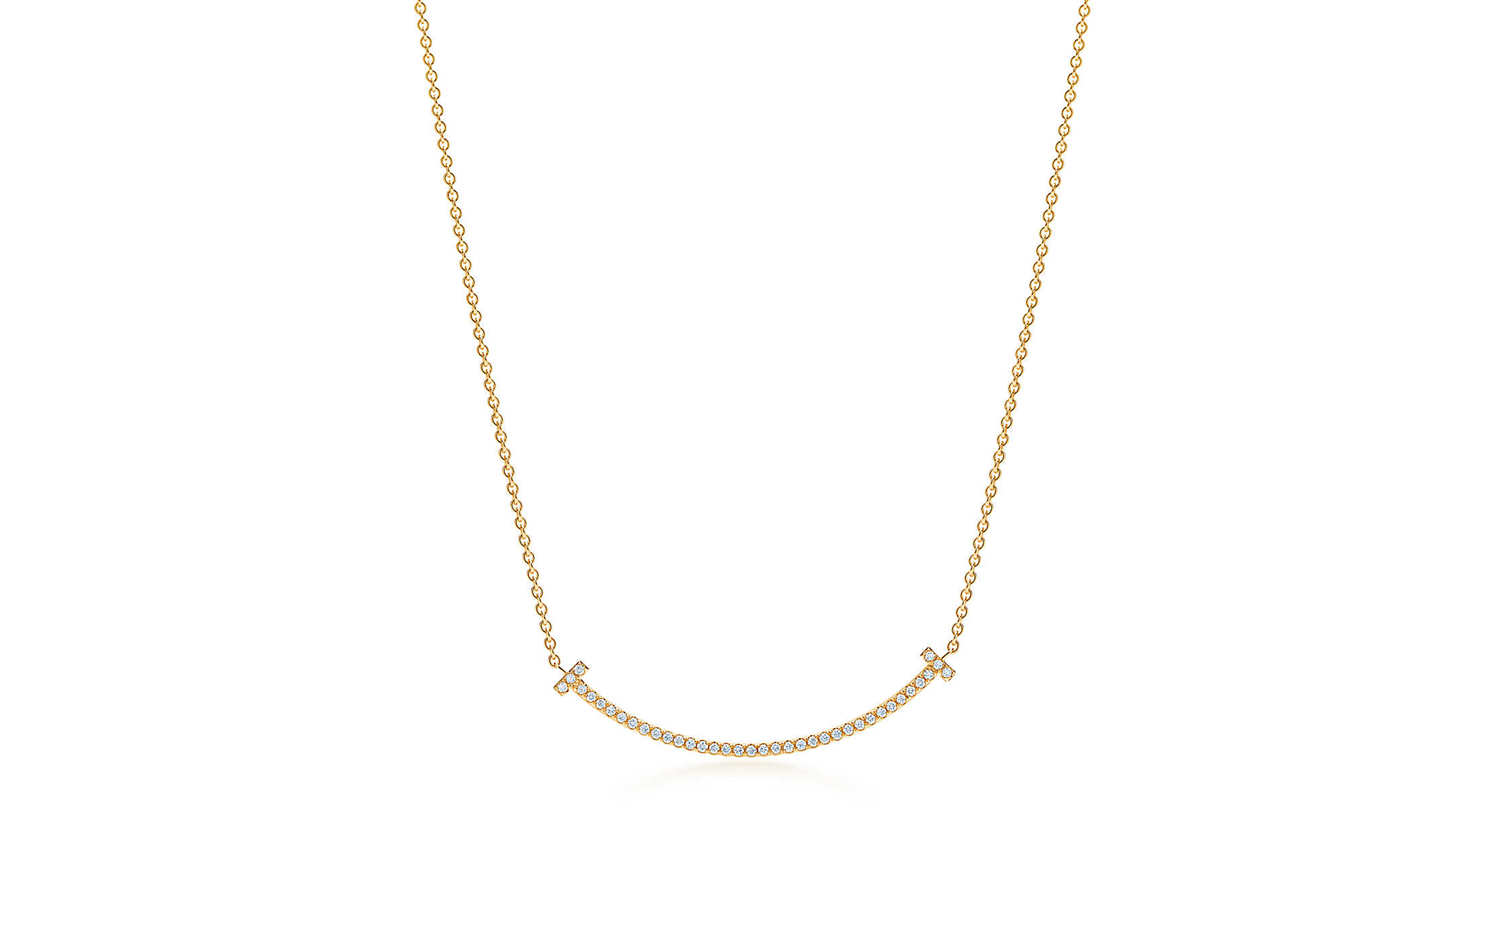 Tiffany T Smile Pendant in Gold - Mini